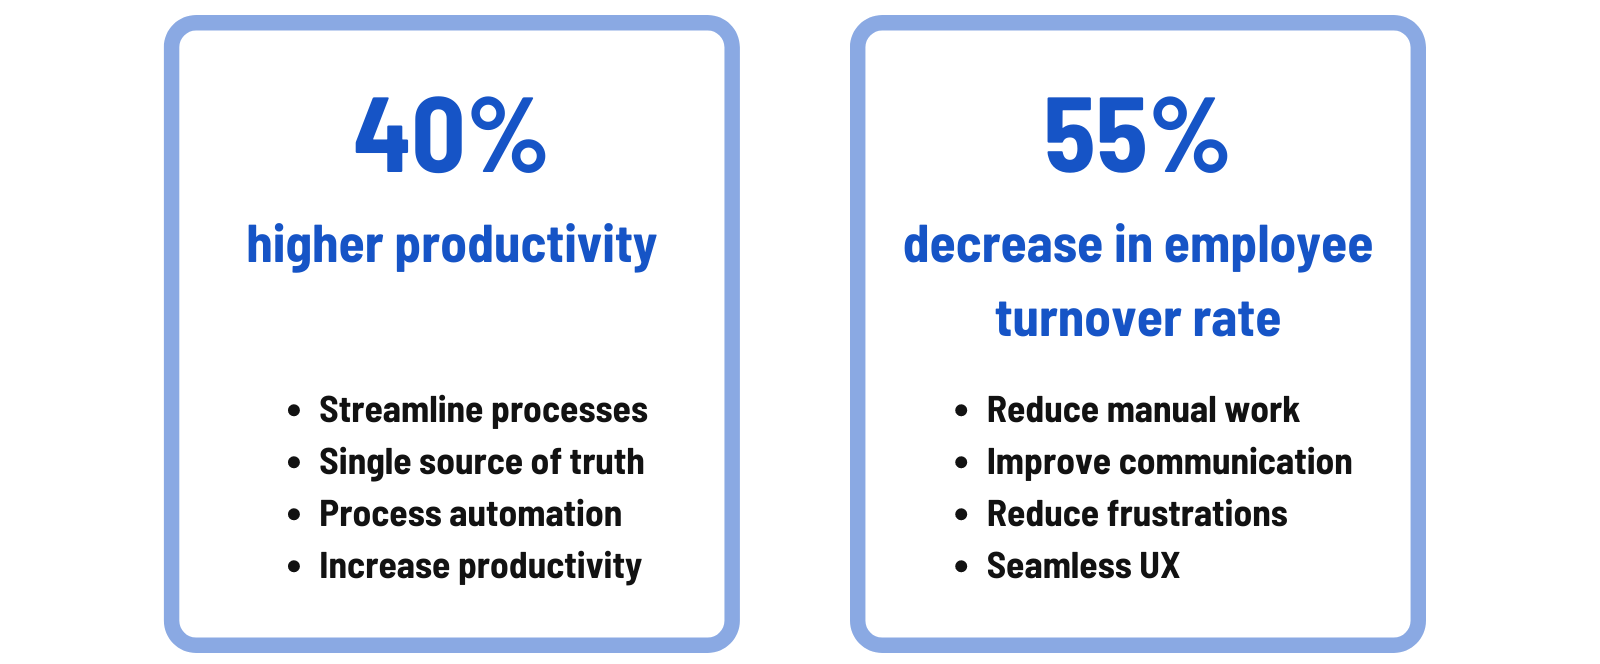 Benefits of a modern intranet, such as 40% higher productivity and 55% decrease in employee turnover rate